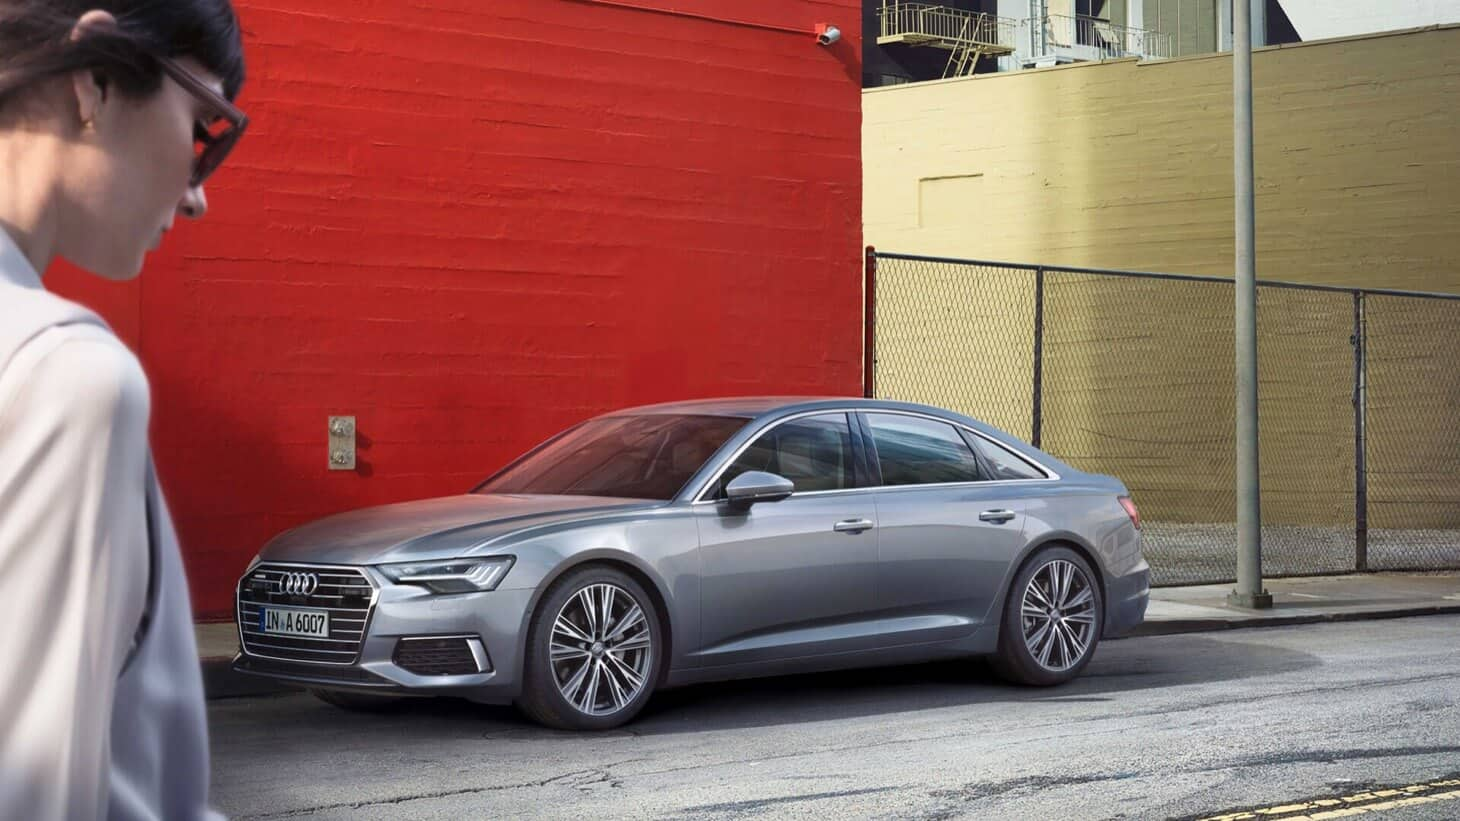 2020 Audi A6 Register Your Interest Today Audi Middle East